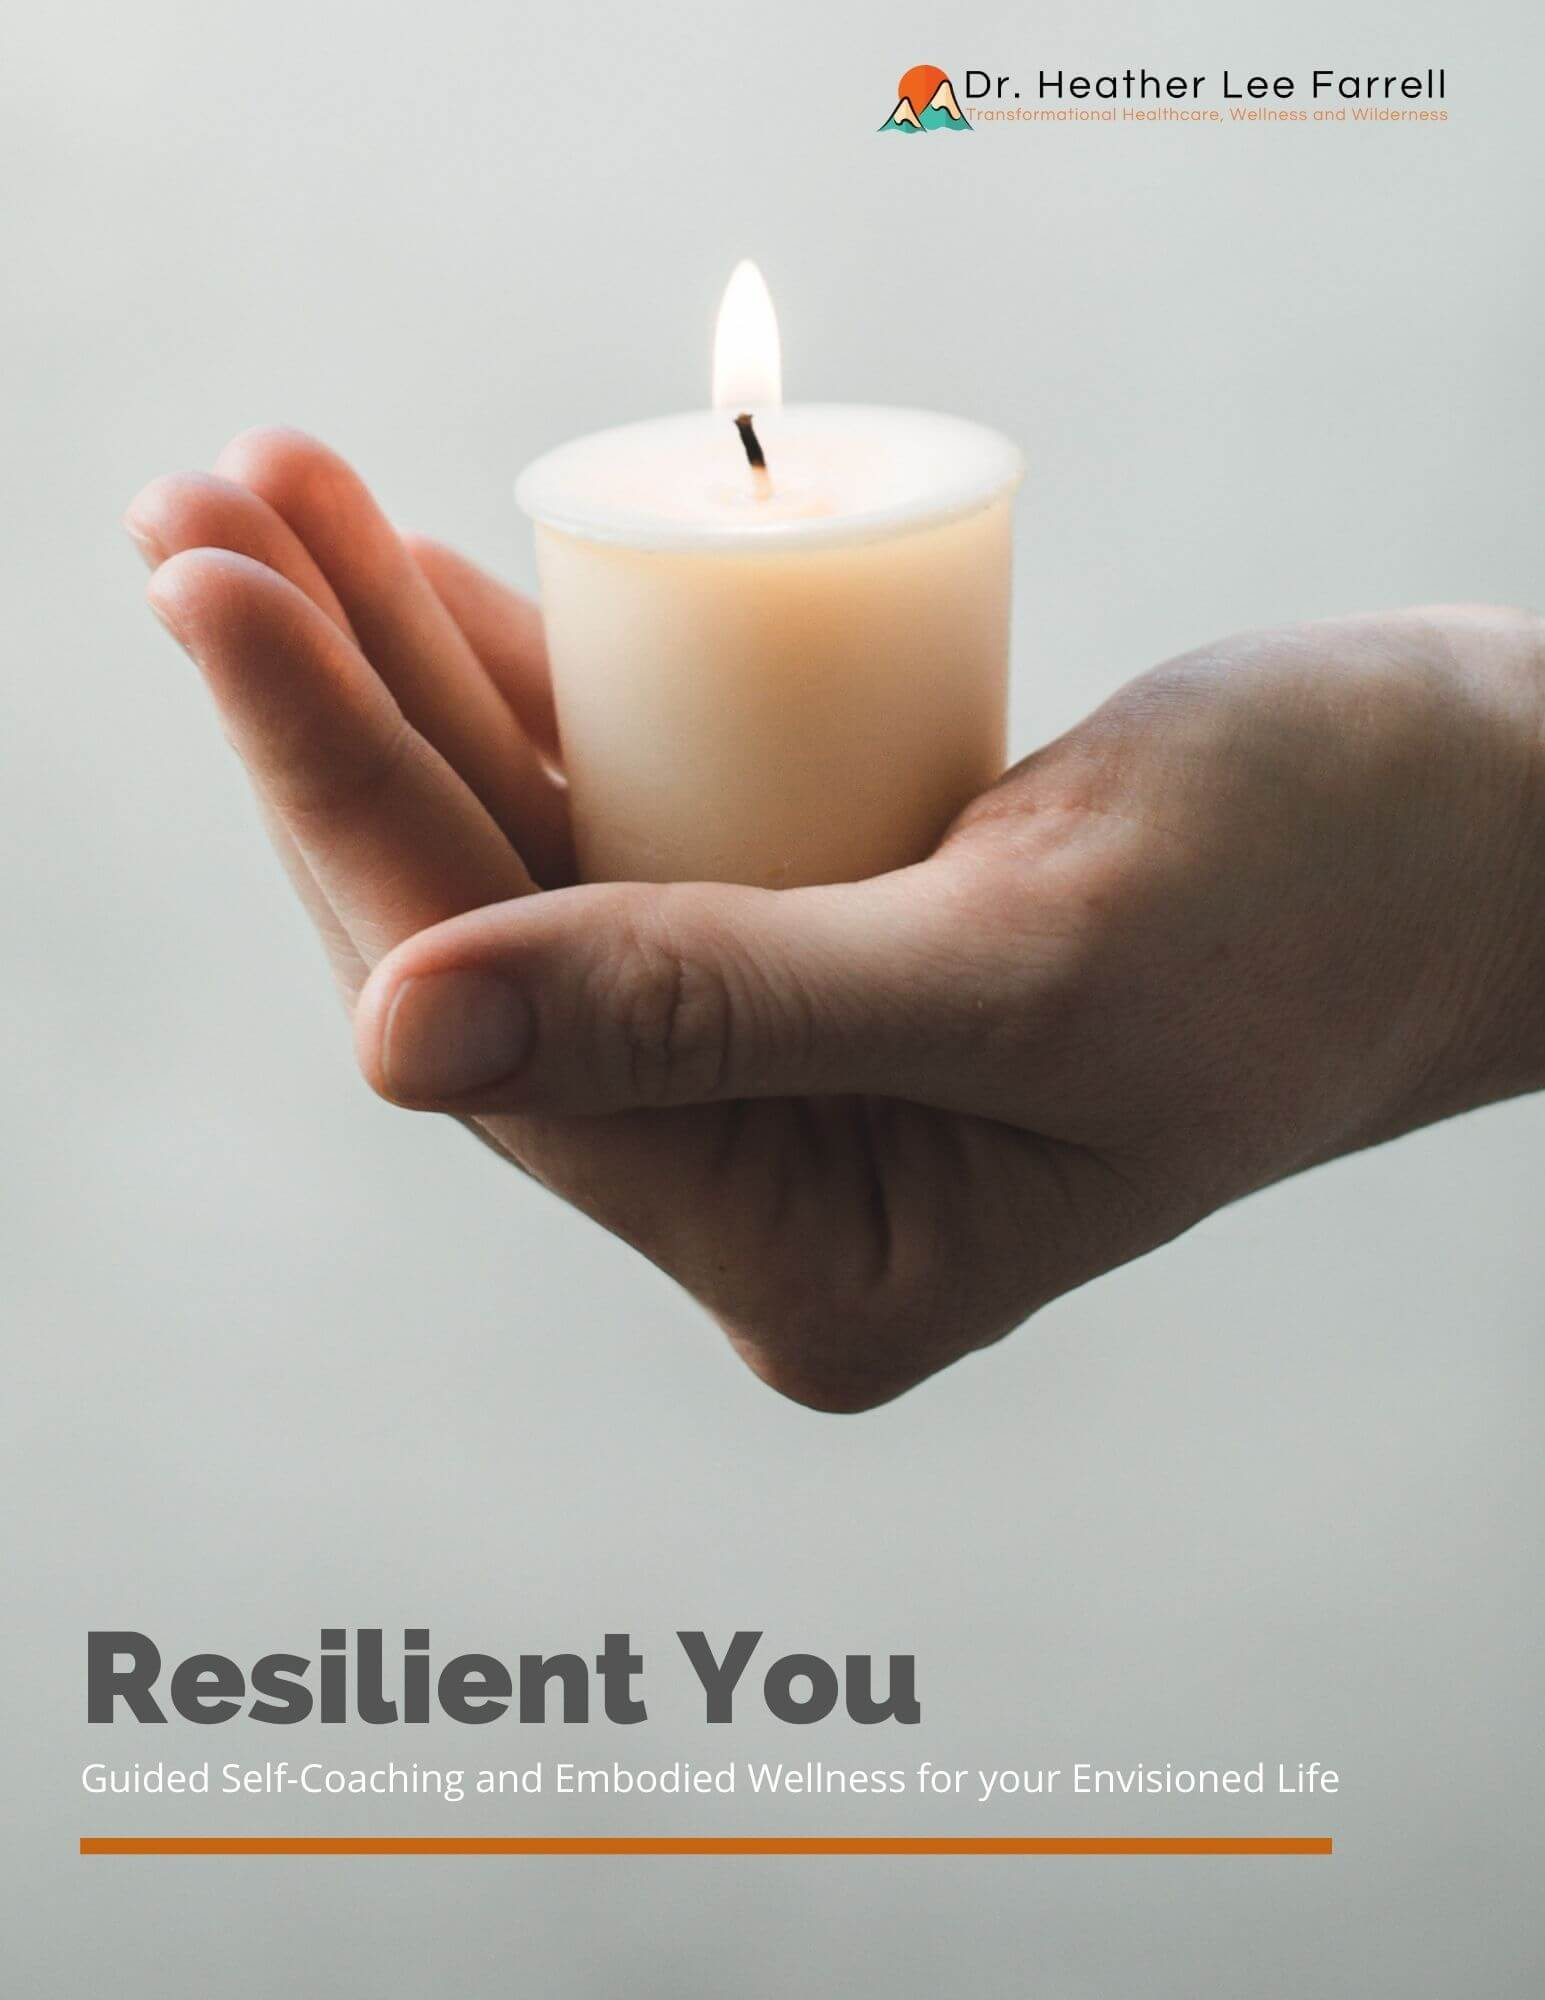 Resilient you with hand holding a lit candle